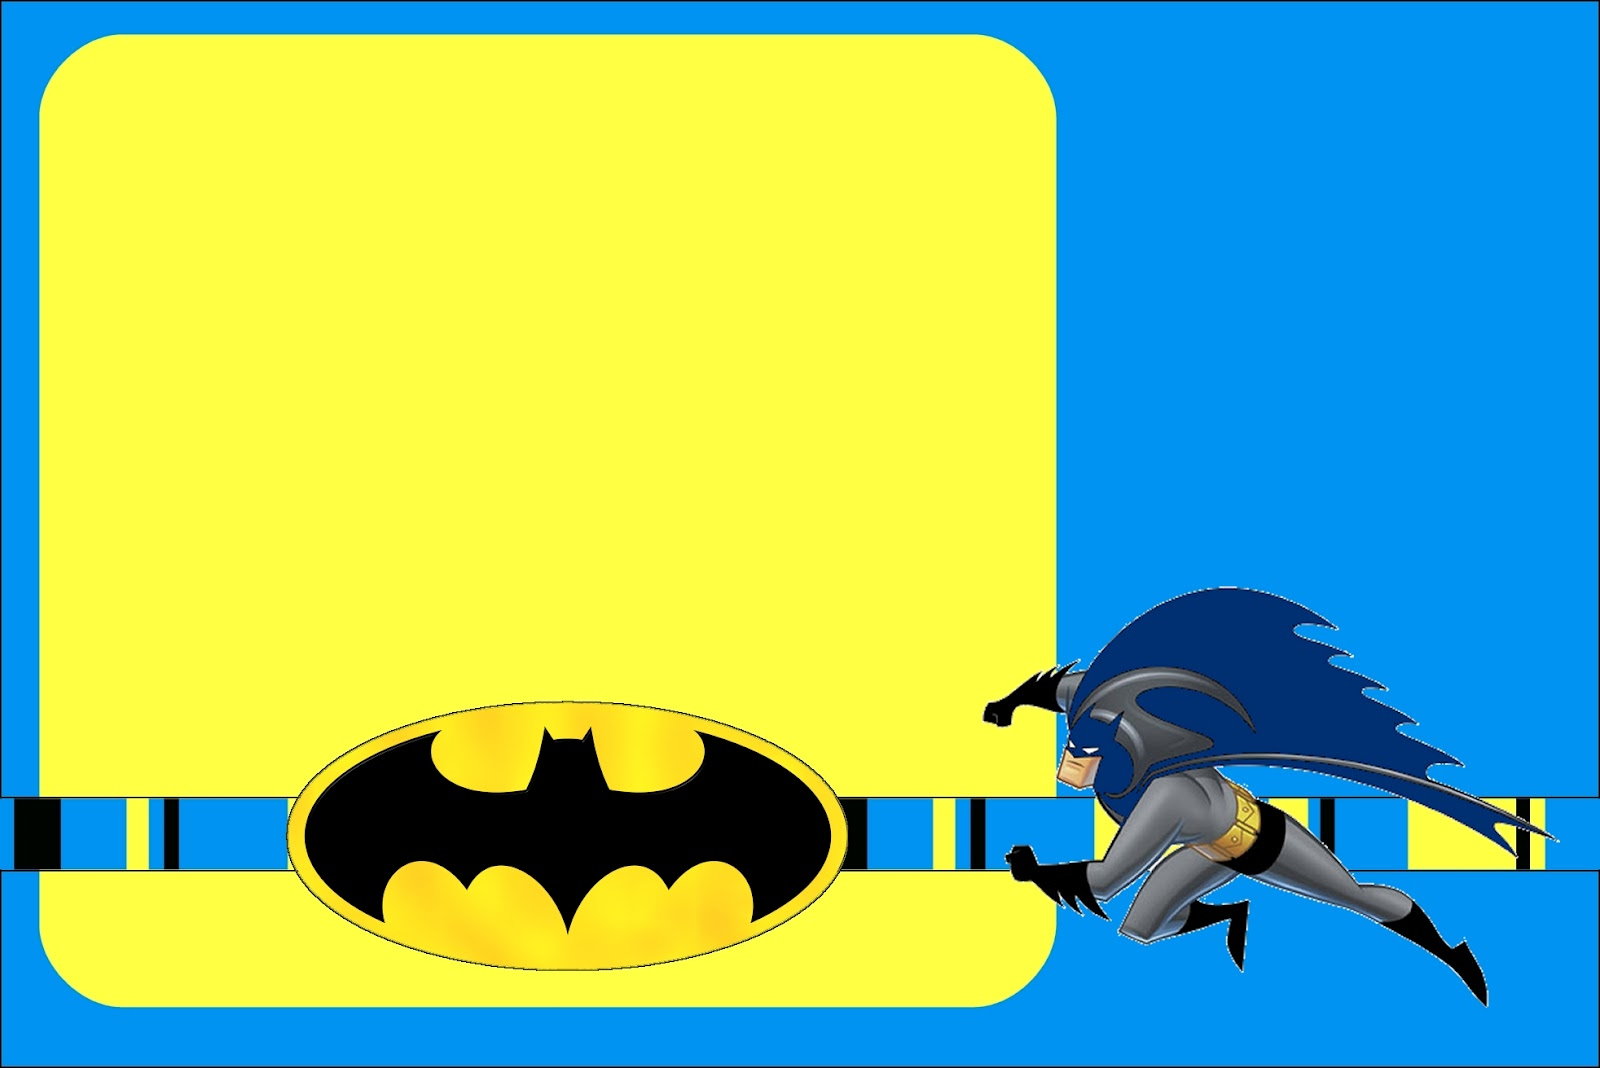 Batman Free Printable Invitations. | Is it for PARTIES? Is it FREE? Is it CUTE? Has QUALITY? It ...